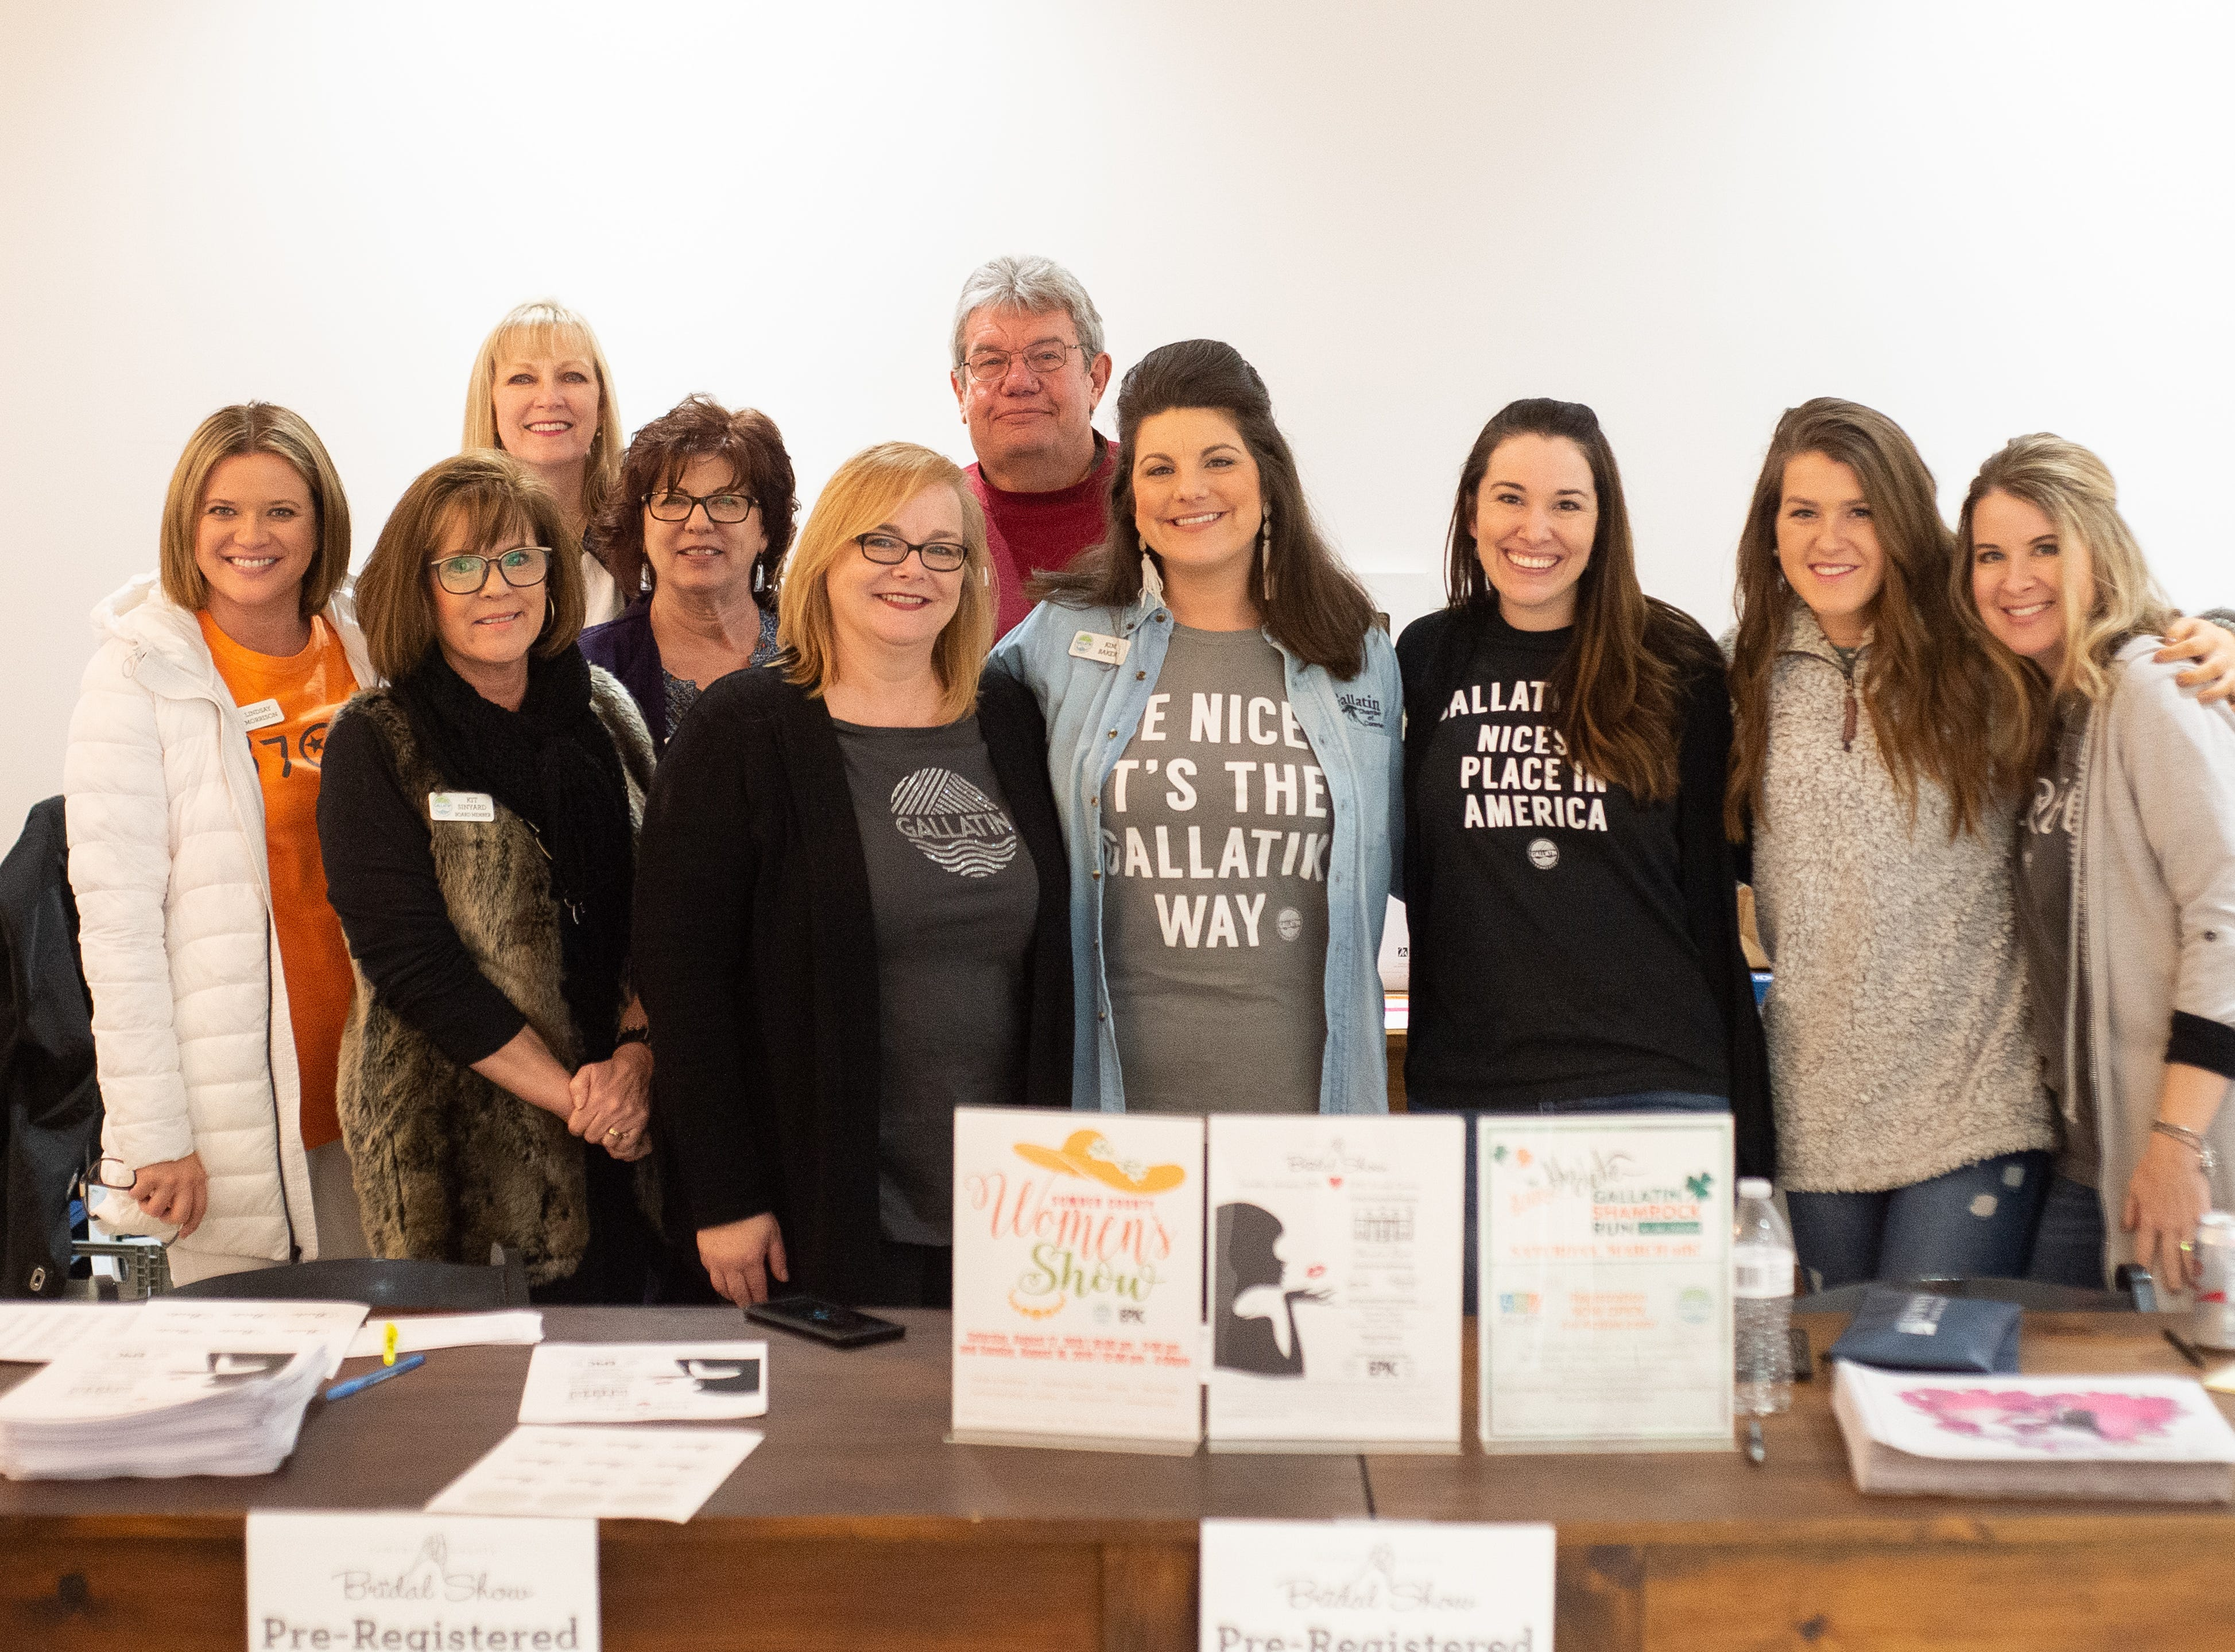 The Gallatin Chamber of Commerce presented the Sumner County Bridal Show with Epic Event Center in Gallatin on Sunday, Jan. 27.